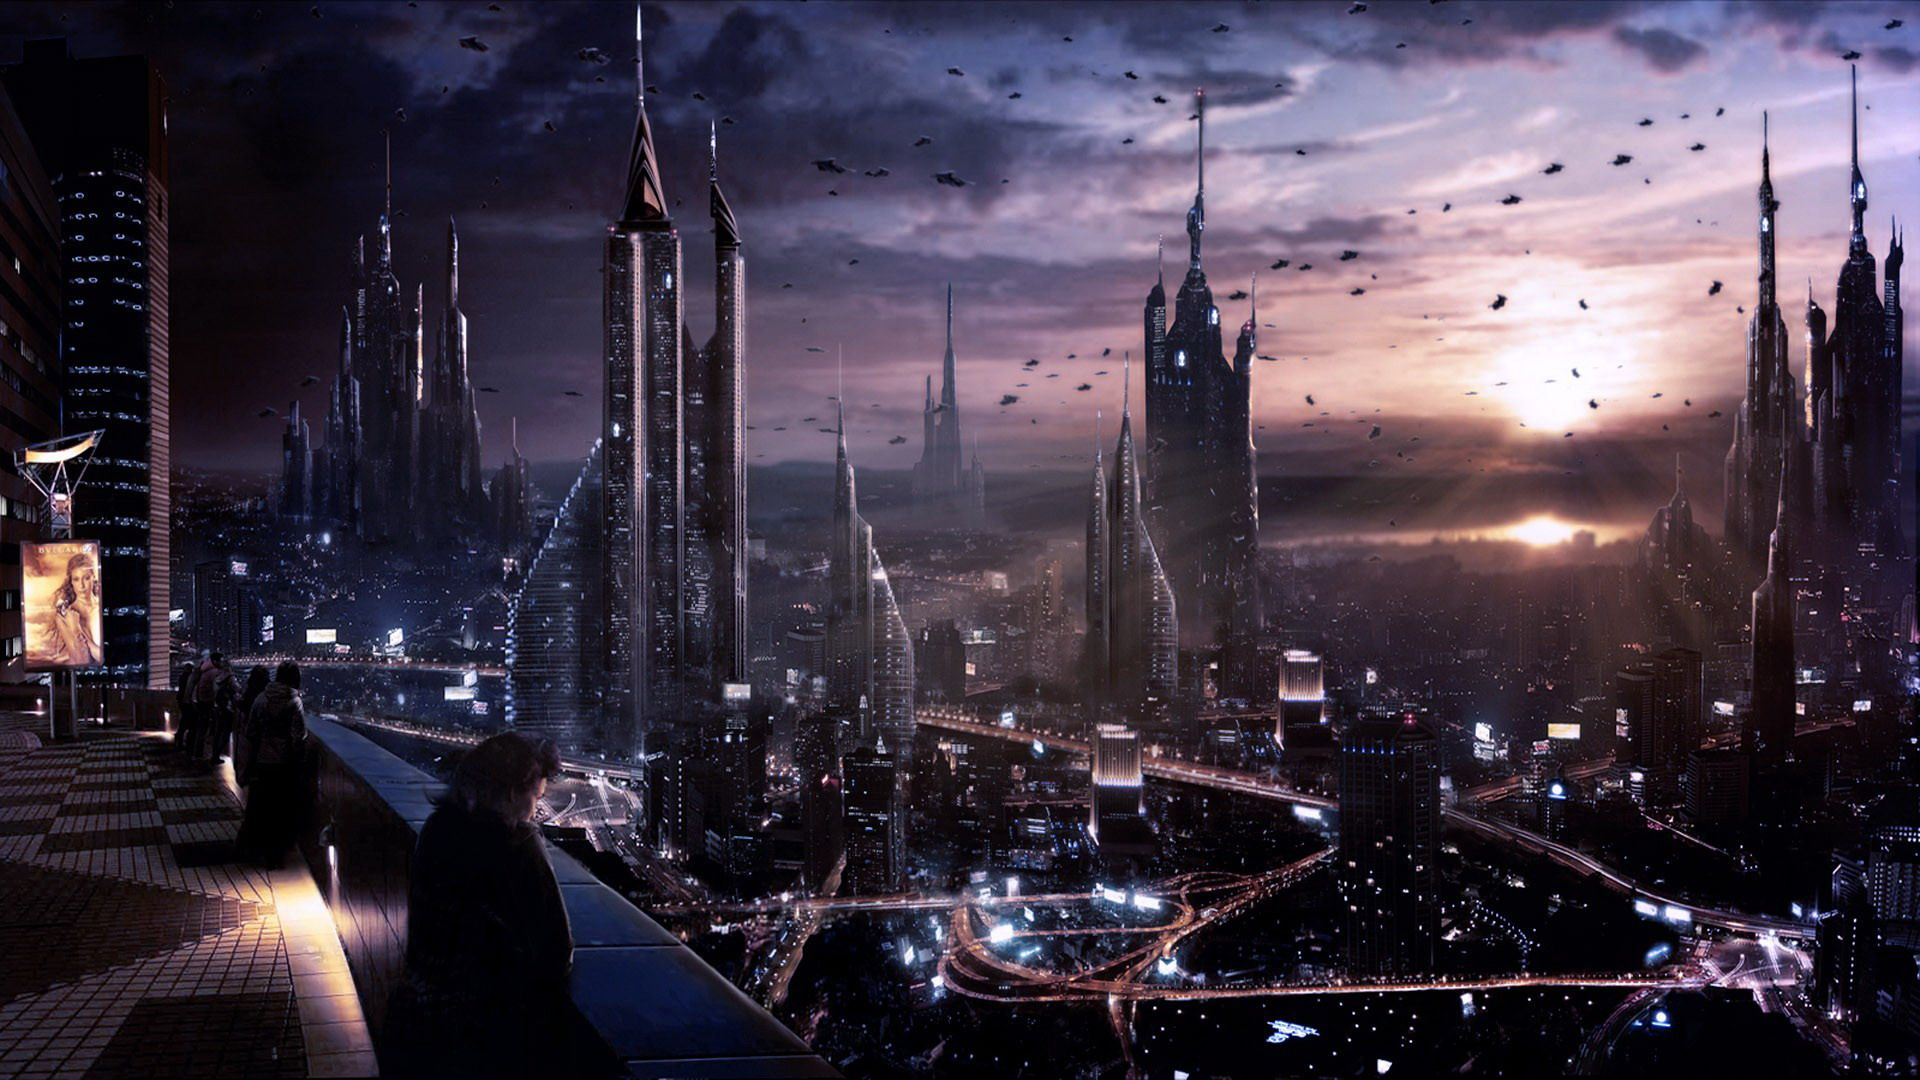 Pin by SiliconJon on SciFi Cities Scapes & Skies